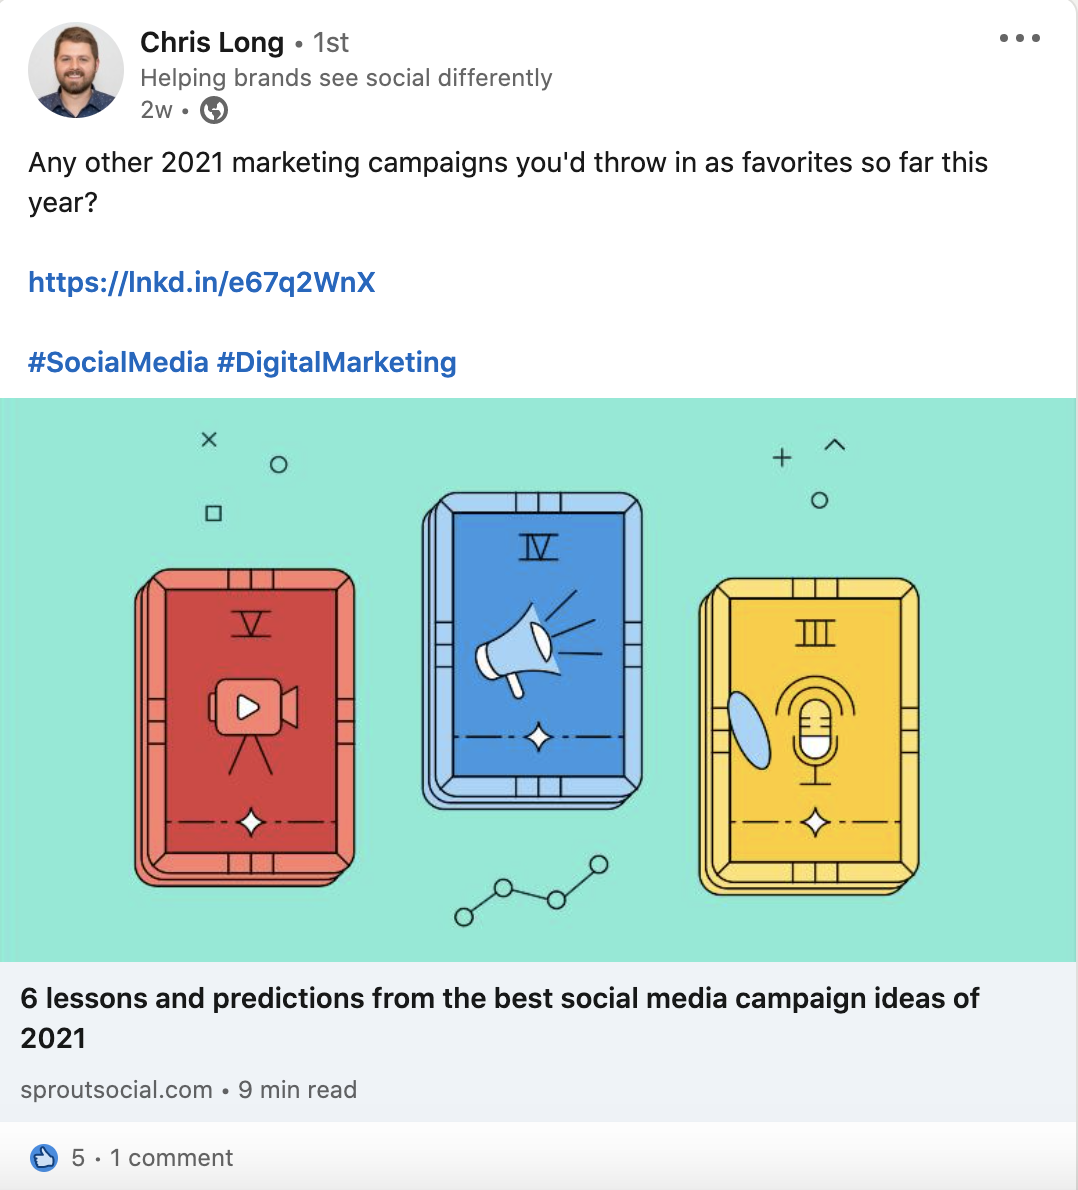 A LinkedIn post promoted the launch of a new content piece